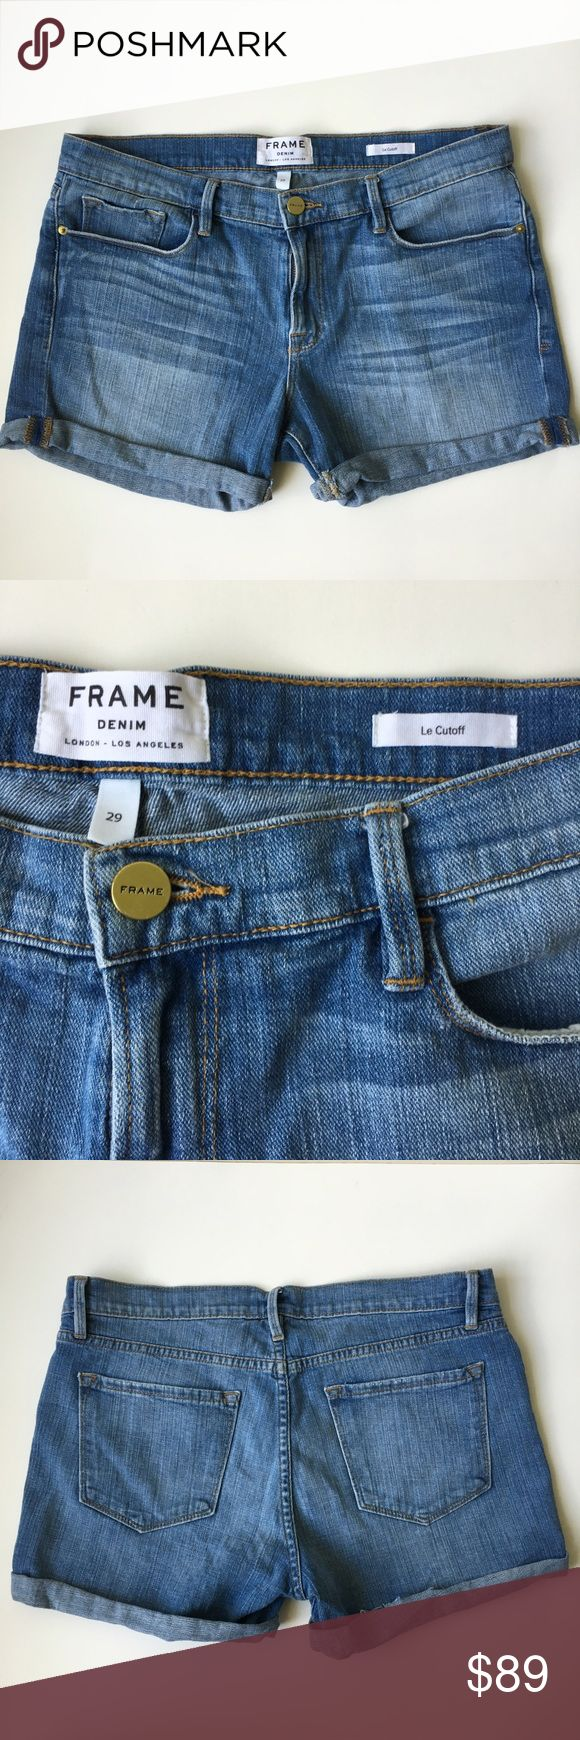 """Frame Denim Le Cut Off Cuffed Short Sooo sad to have to sell these  but I lost some weight and they are too big; my loss, your gain! Gorgeous, FRAME Denim """"Le Cutoff"""" (Church Street) cuffed blue shorts--the perfect pair of jean shorts! So beautiful. Excellent condition; see the last pic for a close up of fraying on the raw edge of the right cuff, but as you can see it's not an issue when wearing & rolled. True to sz 29. stretchy, soft denim material--so comfortable! Fantastic quality, high…"""